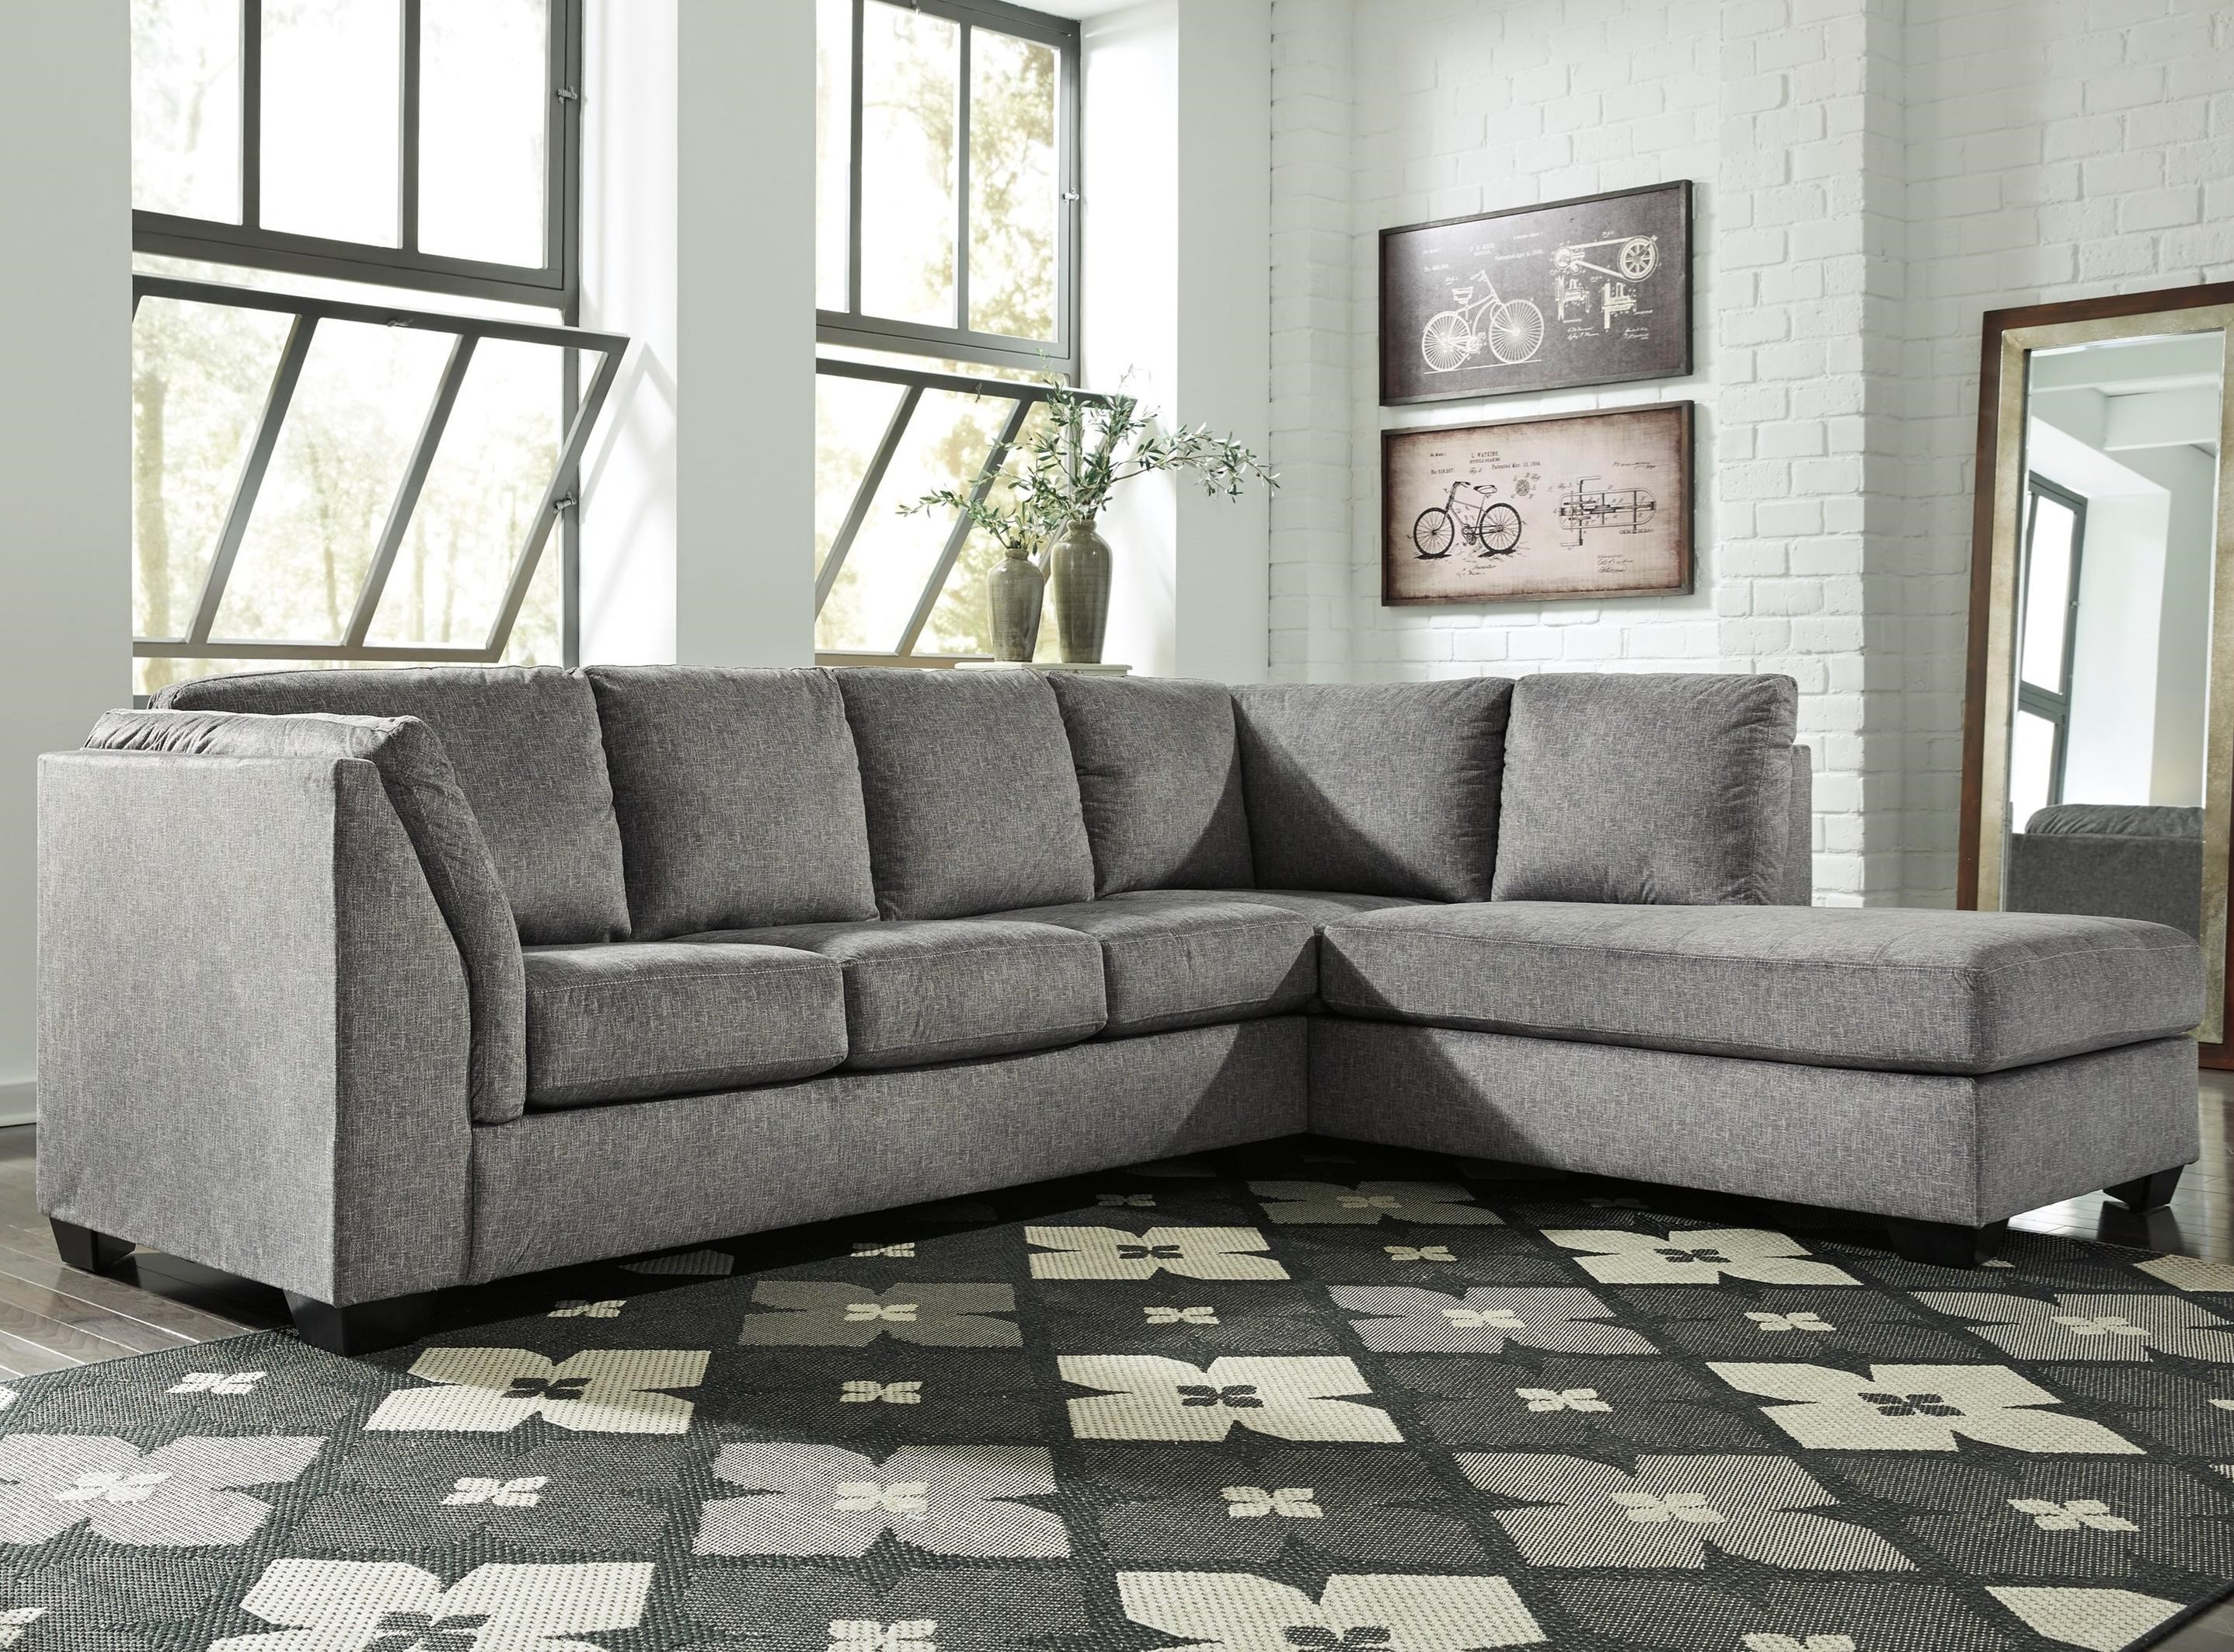 Benchcraft Belcastel 2-Piece Sectional With Right Chaise